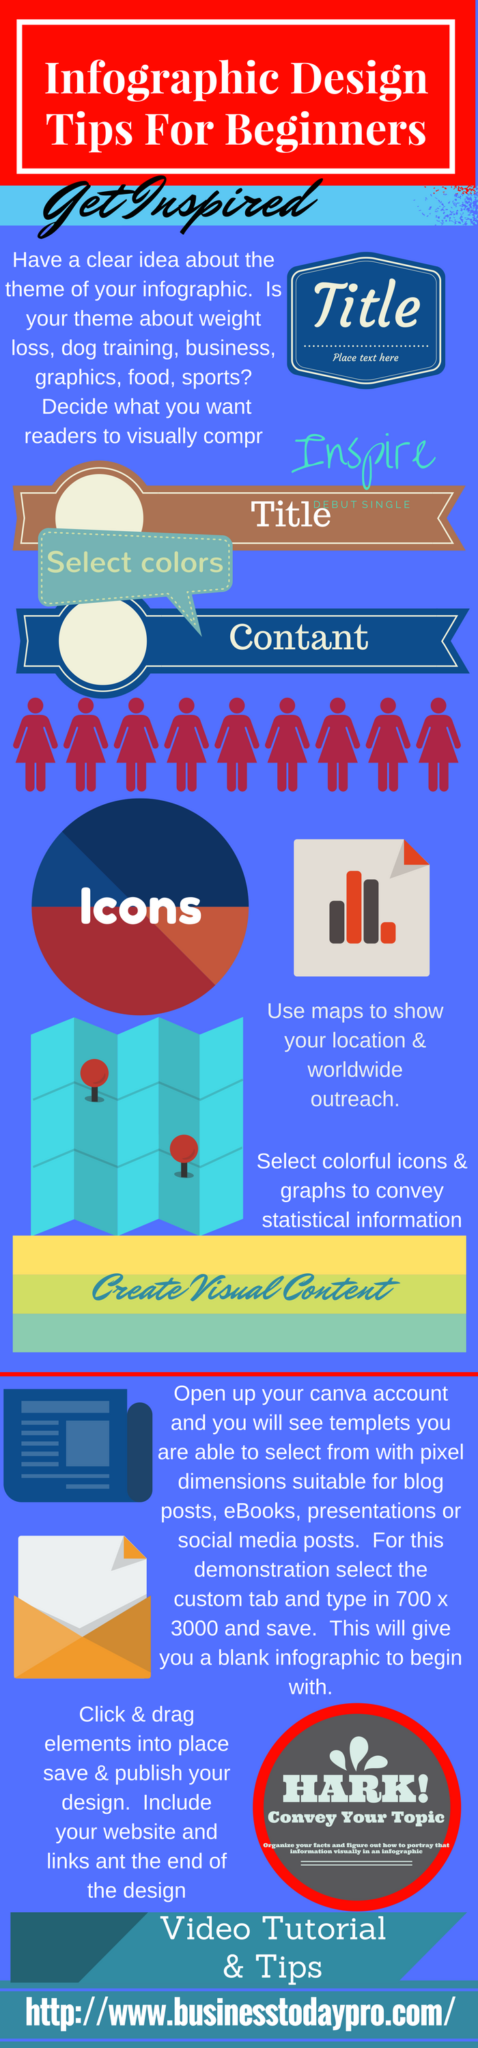 how to makeinfographics design